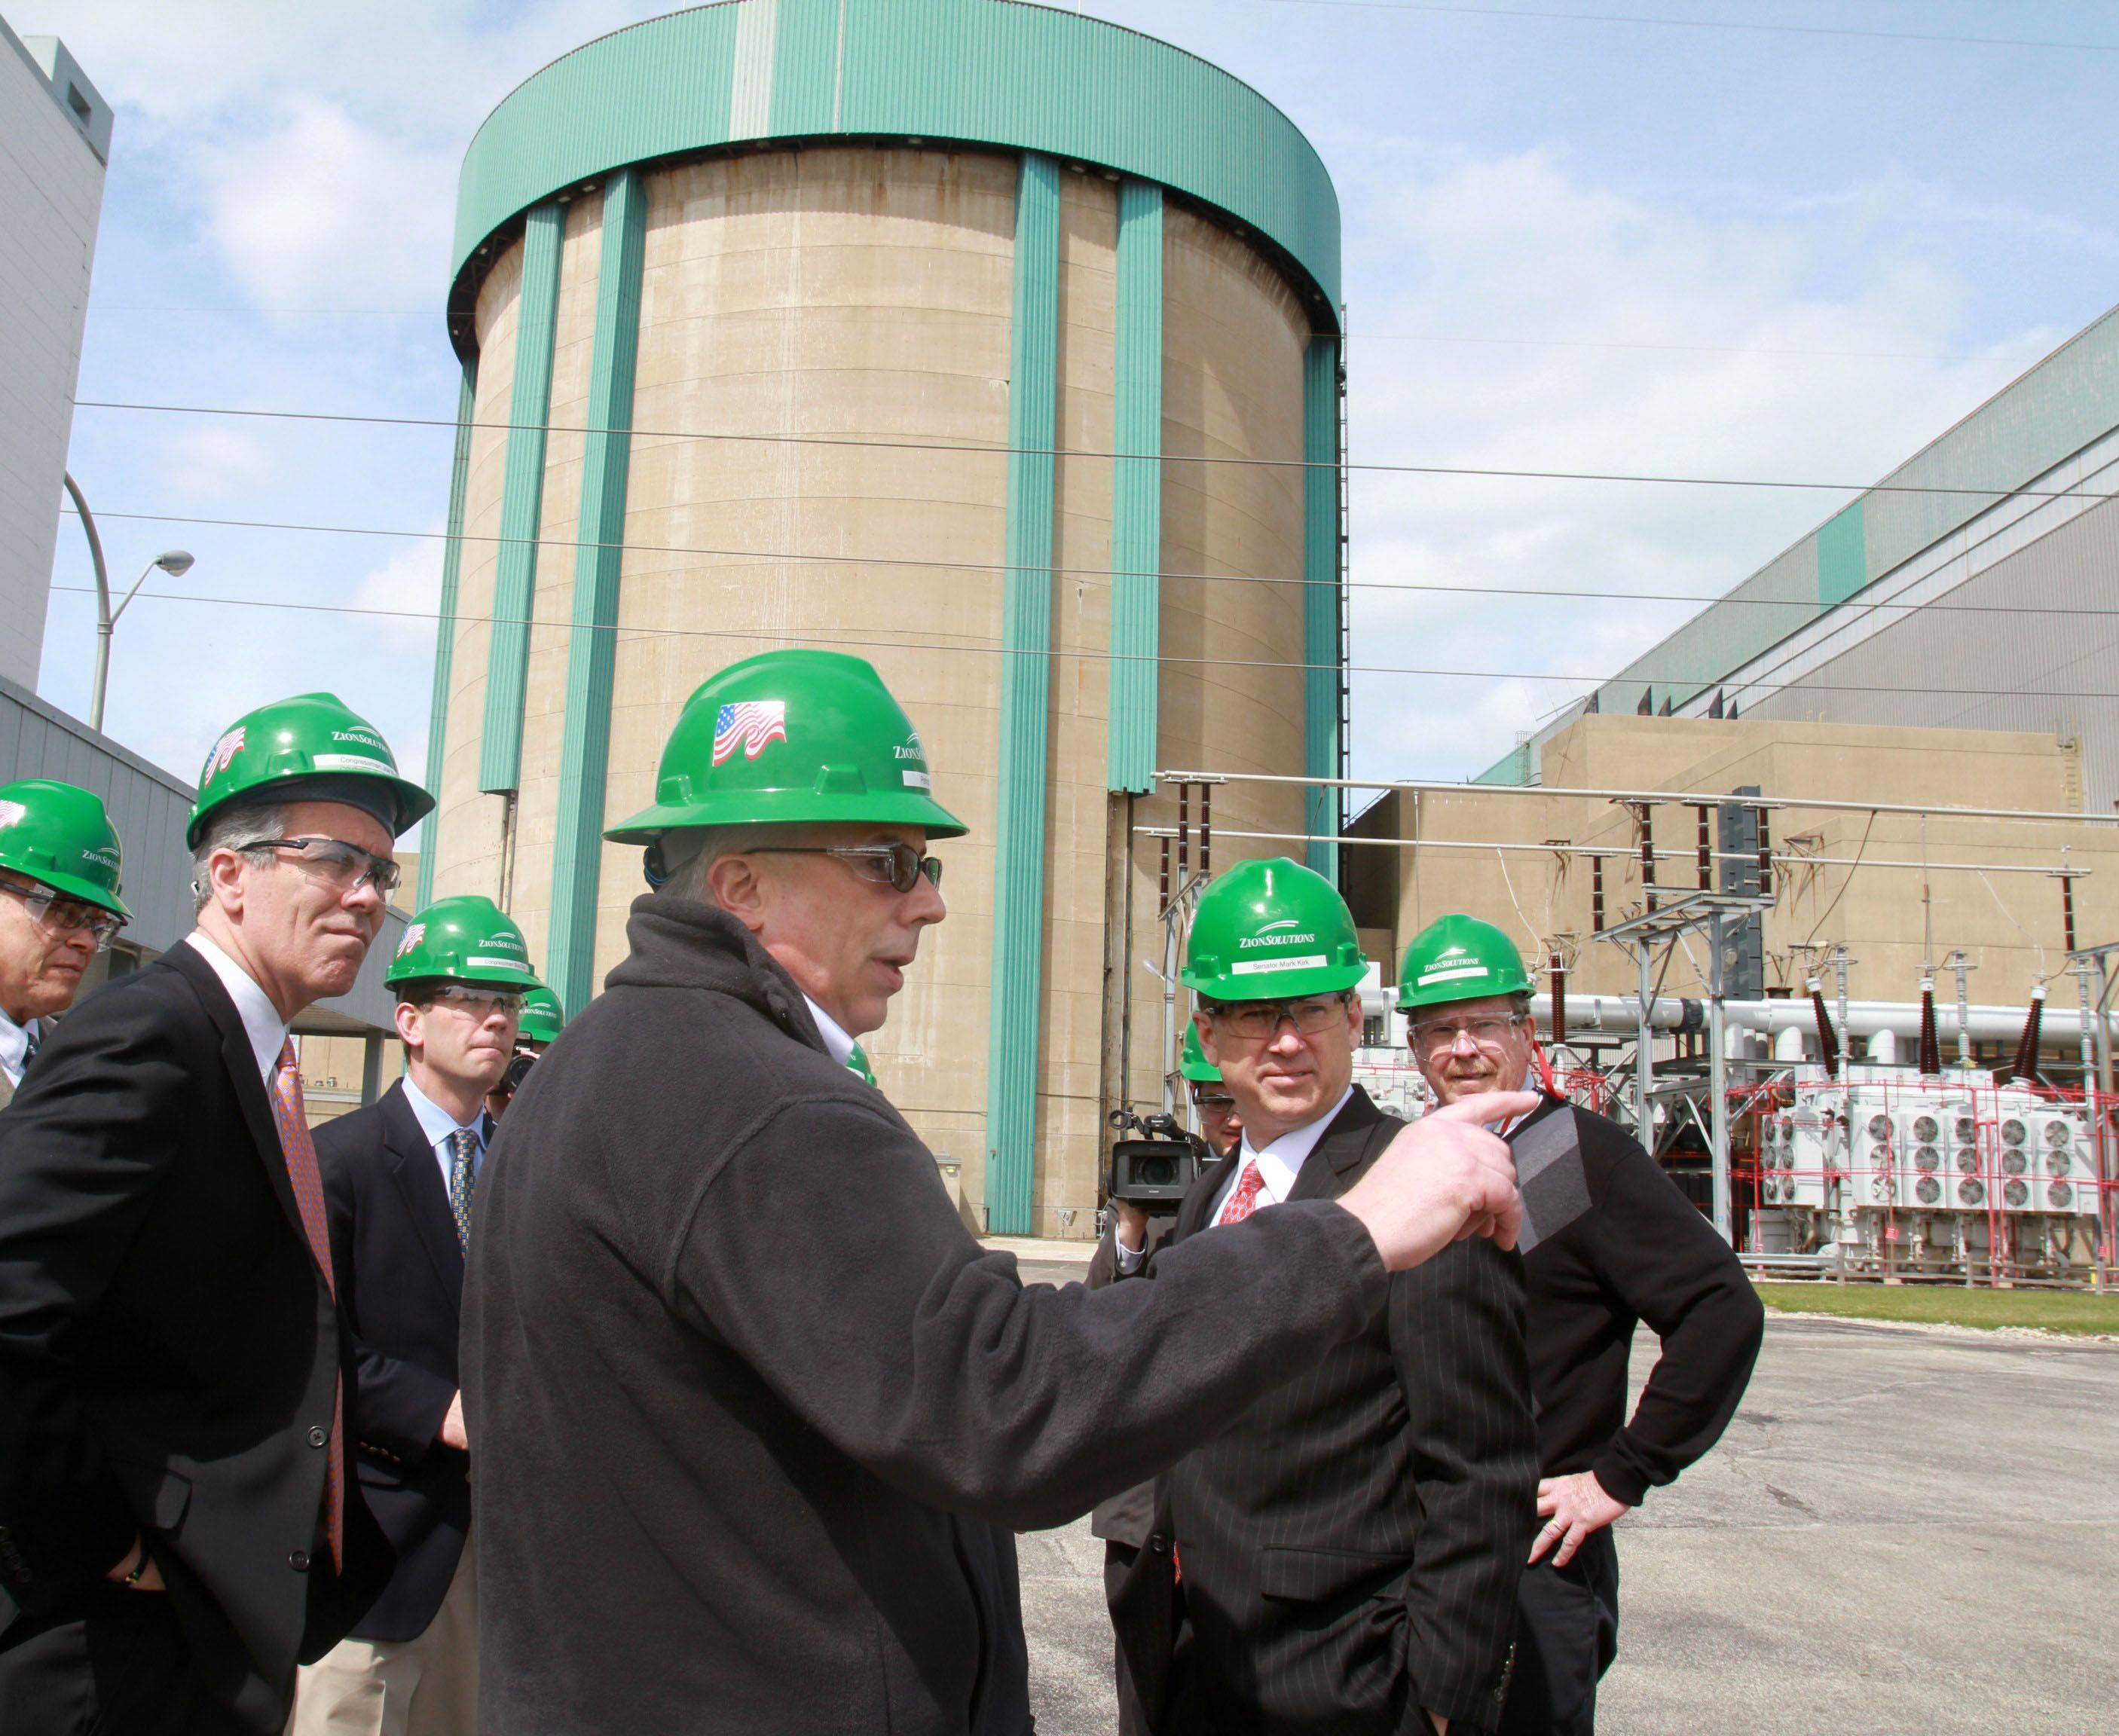 George LeClaire/gleclaire@dailyherald.comPatrick Daly with Zioin Solutions, center foreground, gives U.S. Representative Joe Walsh left to right, U.S. Representative Robert Dold and U.S. Senator Mark Kirk, right a tour of the Zion Nuclear Power Plant on Saturday, April 23. The plant is closed and currently used to cool the spent nuclear fuel.